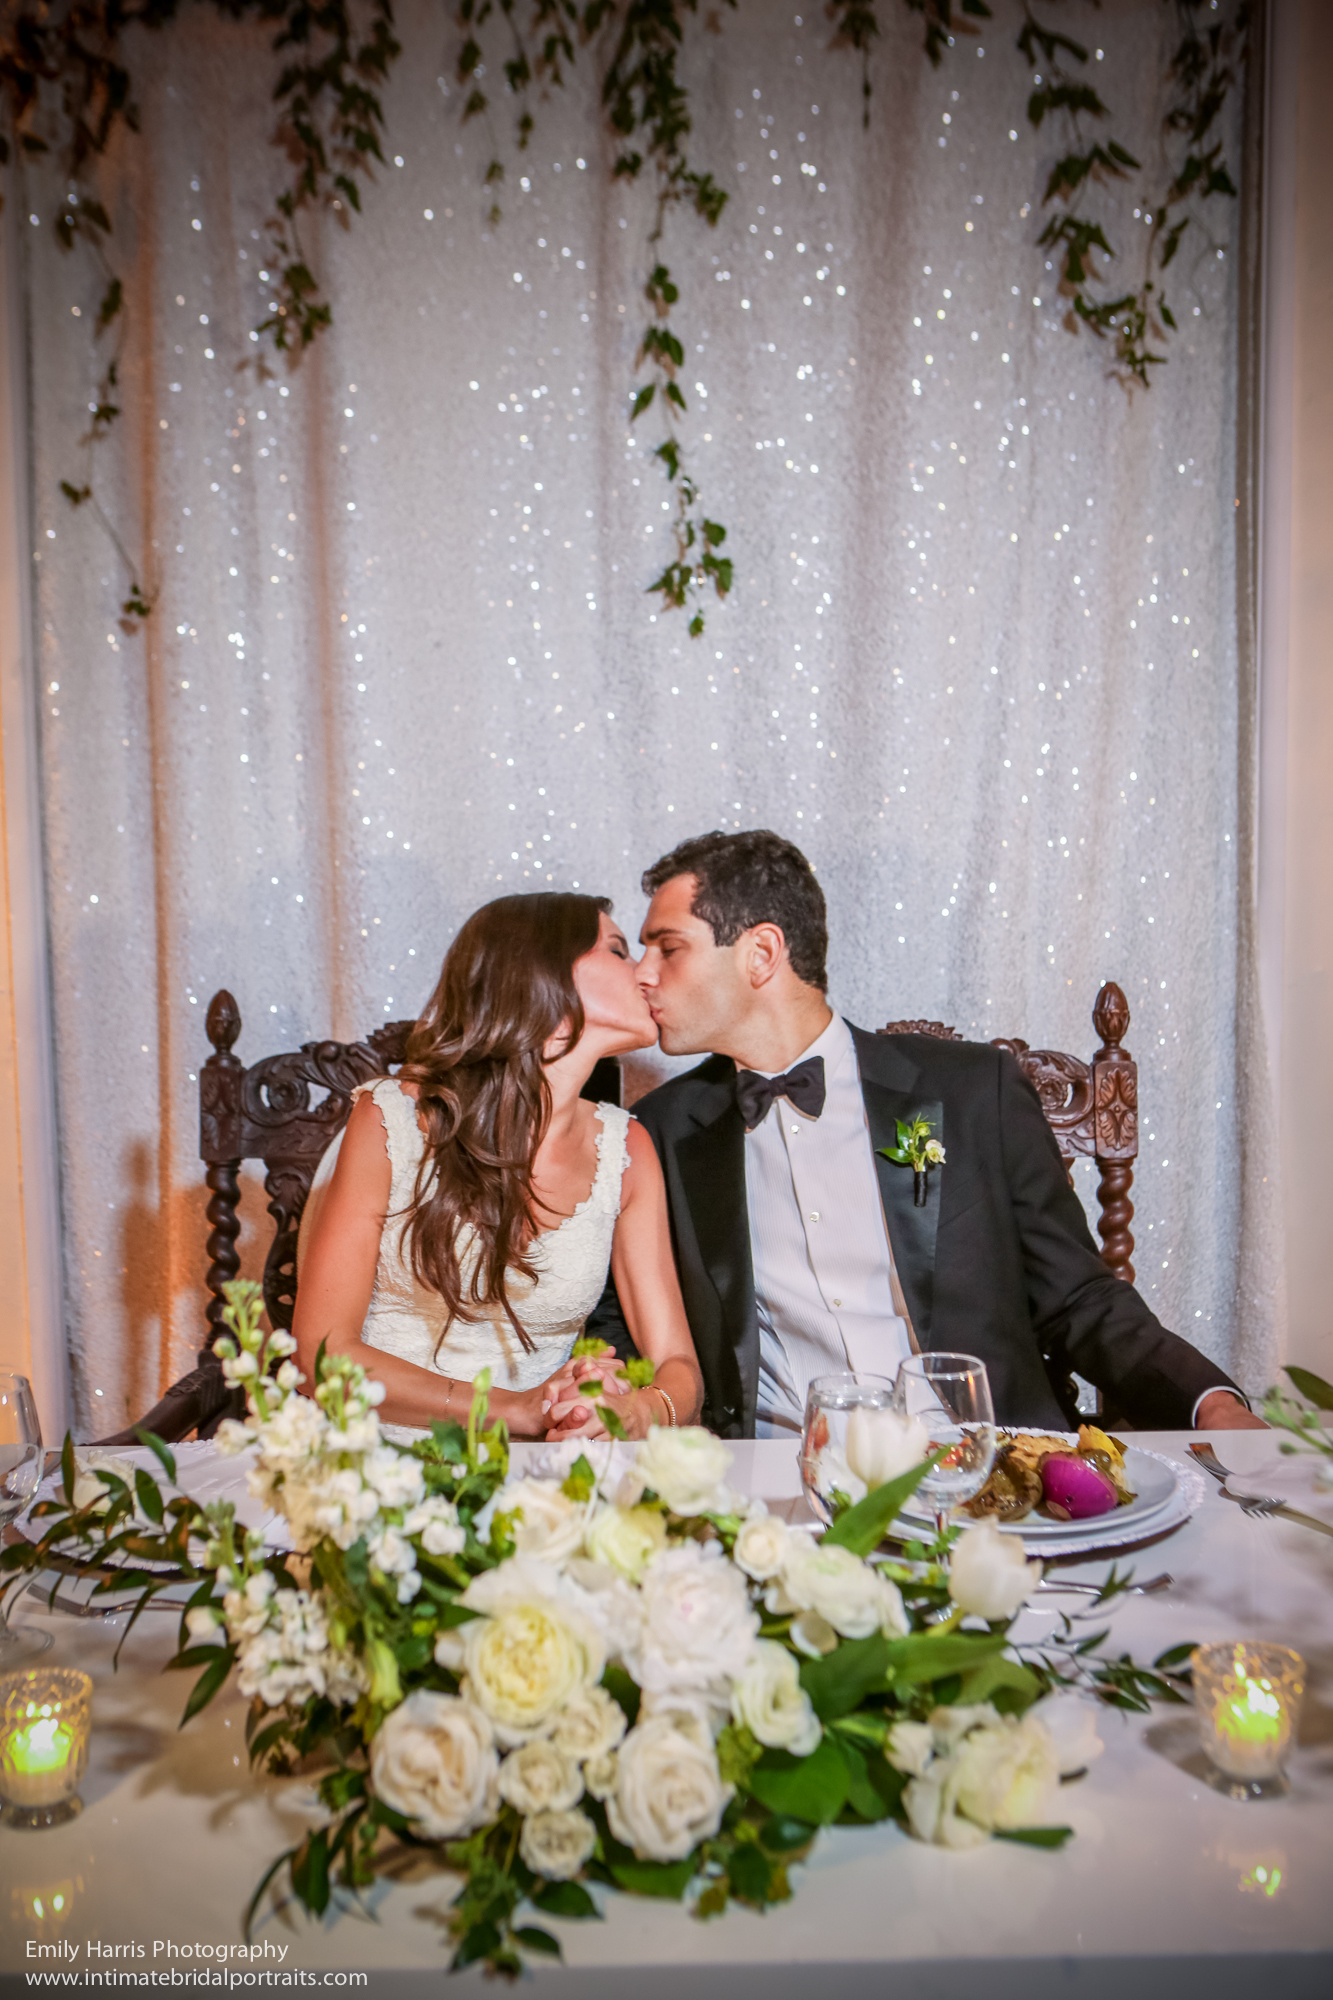 Classic romantic all-white wedding at The Bath Club